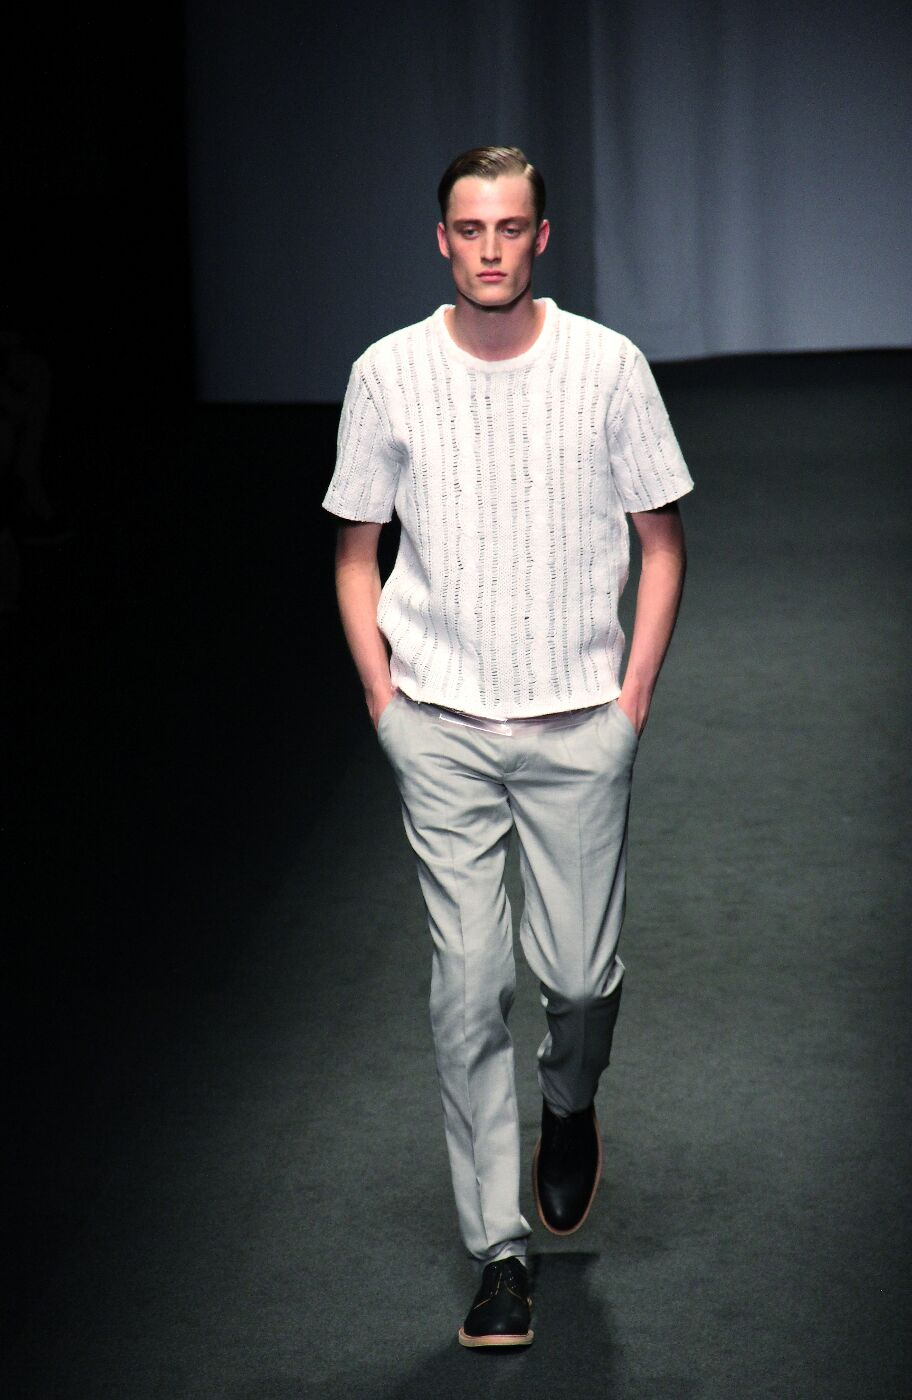 nicole-farhi-spring-summer-2012-men-collection-milano-fashion-week-2012-nicole-farhi-fashion-show-catwalk